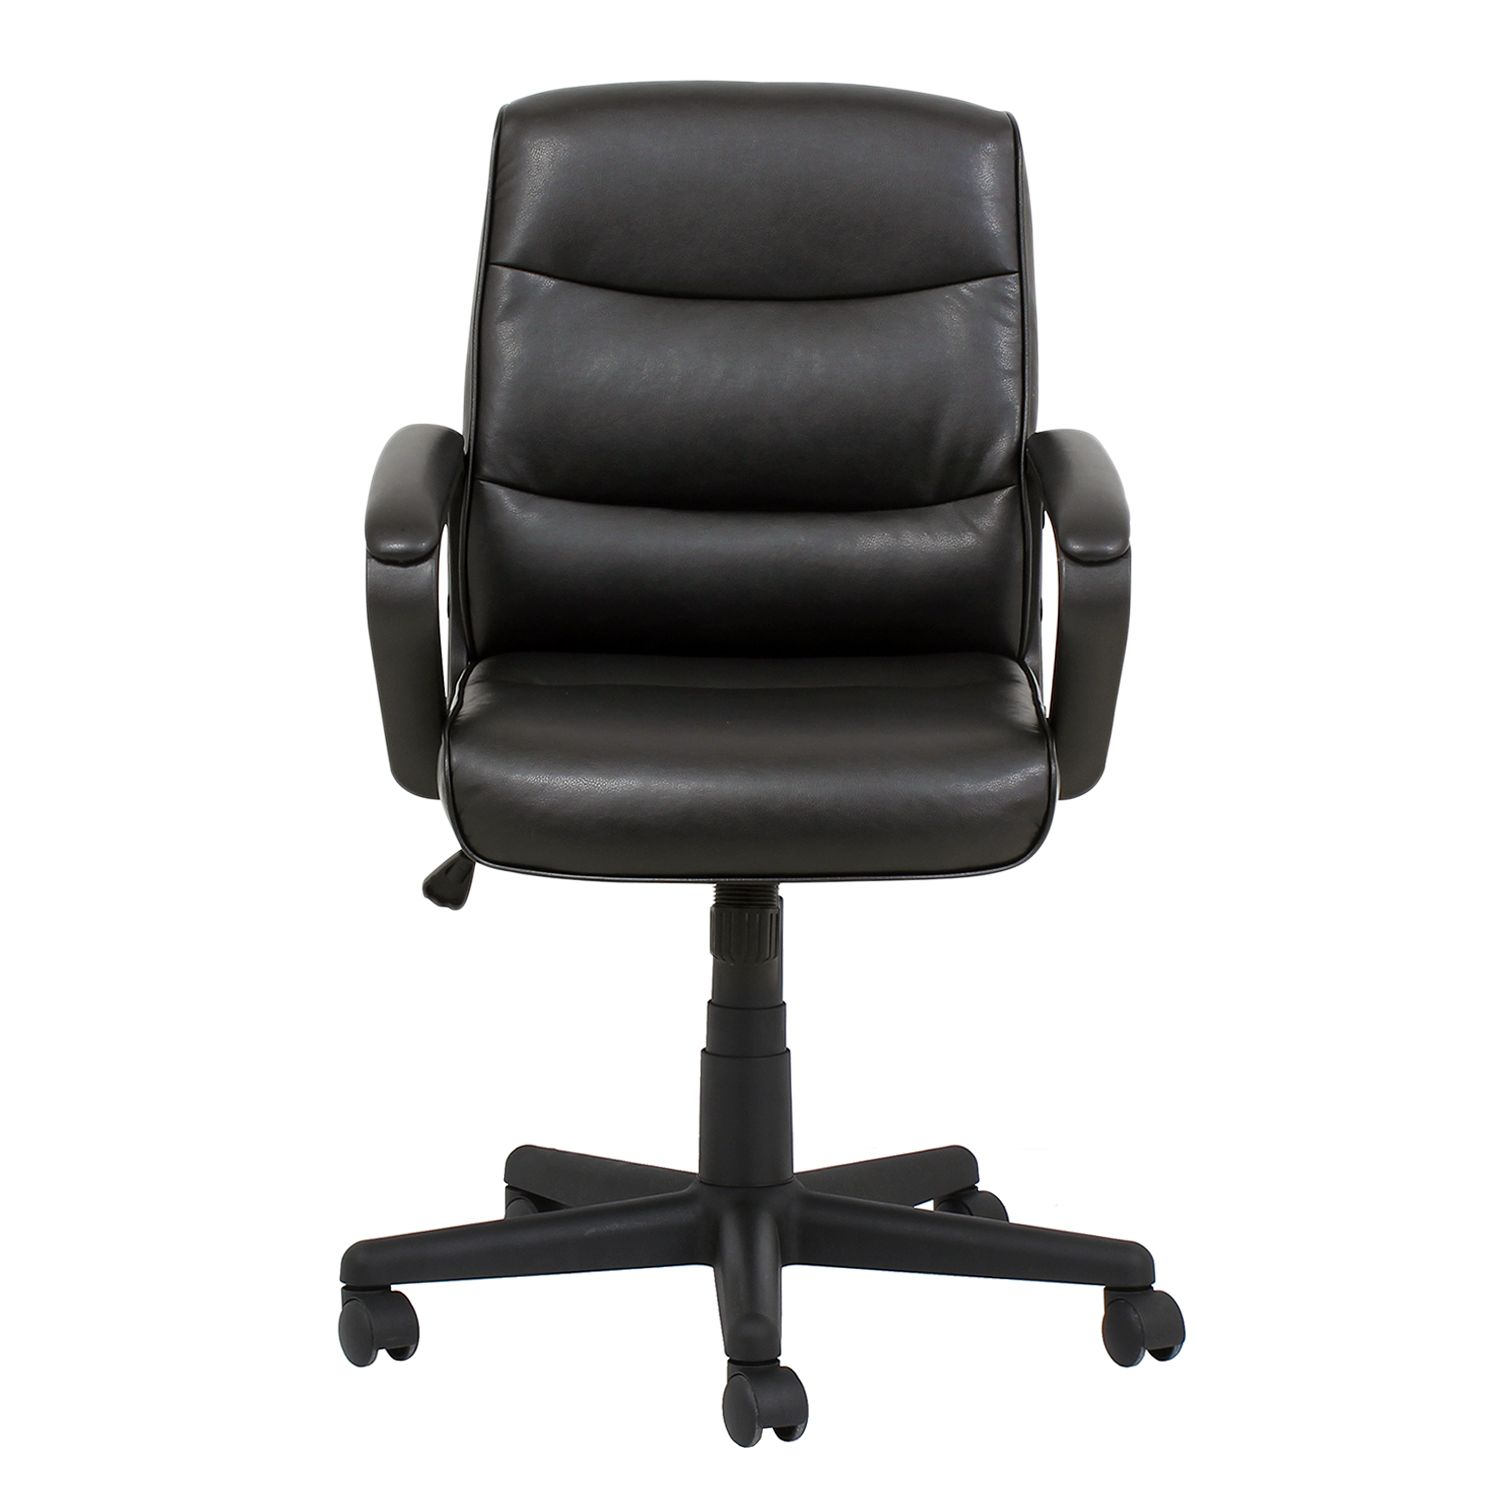 swivel thomasville full brown desk sams at executive arms rolling cool me walmart home furniture task buy with study cute armchair office ch ergonomic cost modern size second leather hand club computer ideas and online sale massage chair mesh chairs near new for rolly comfy design of